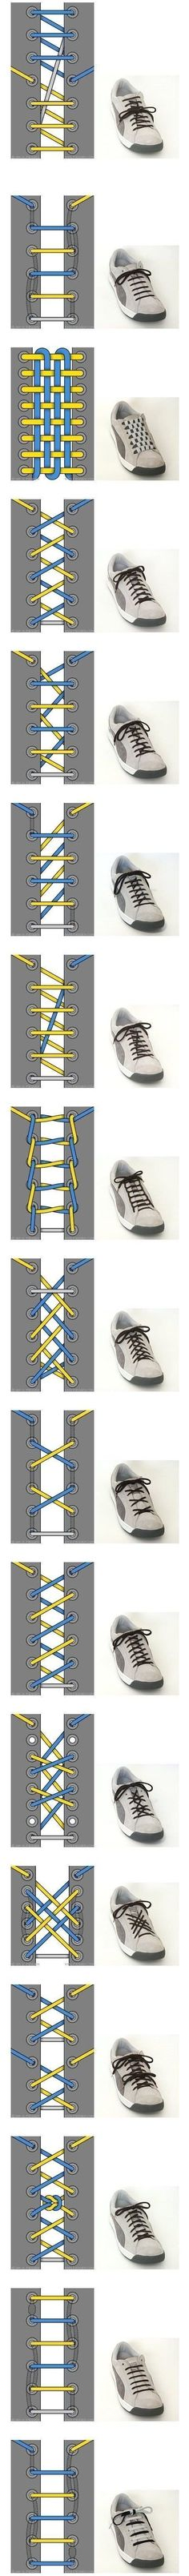 17 Ways To Tie Your Shoelaces!!